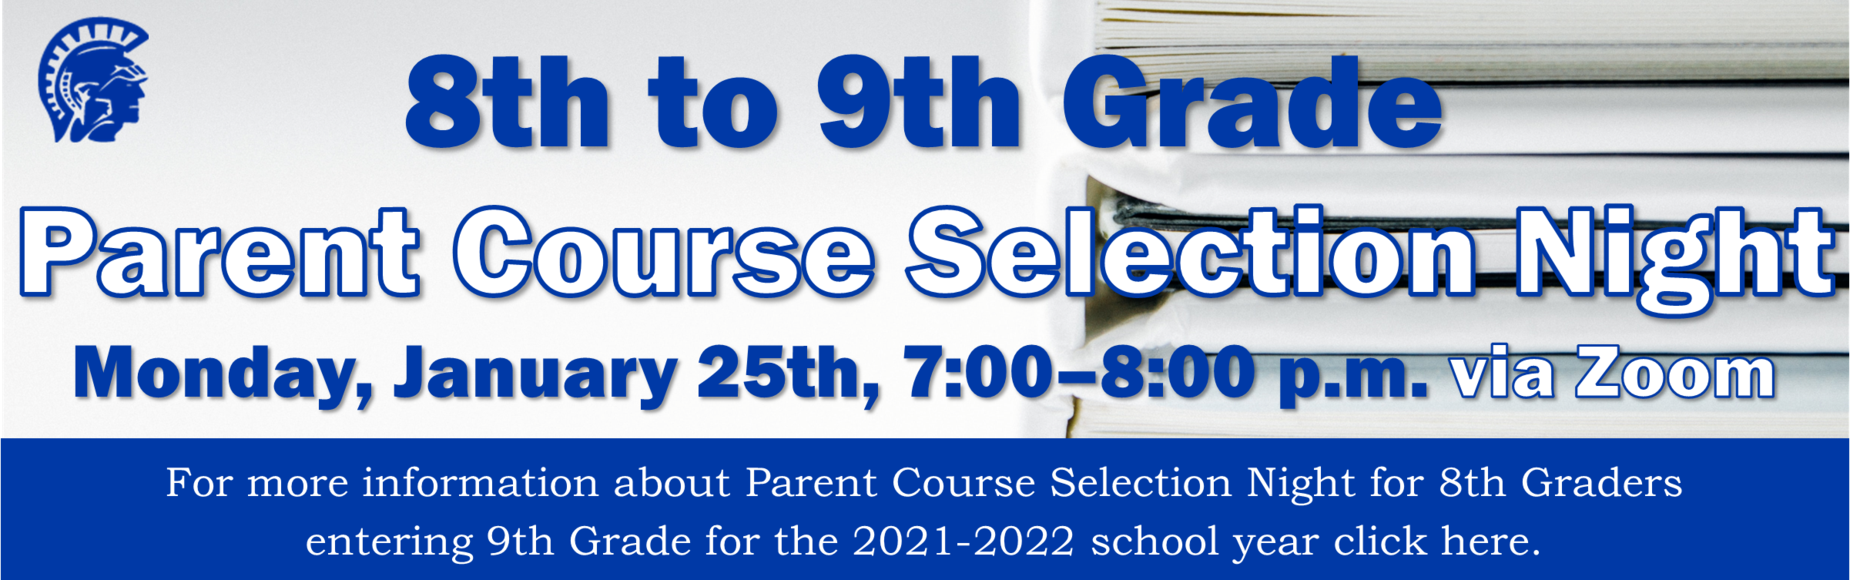 8th to 9th Grade Parent Course Selection Night Banner Image